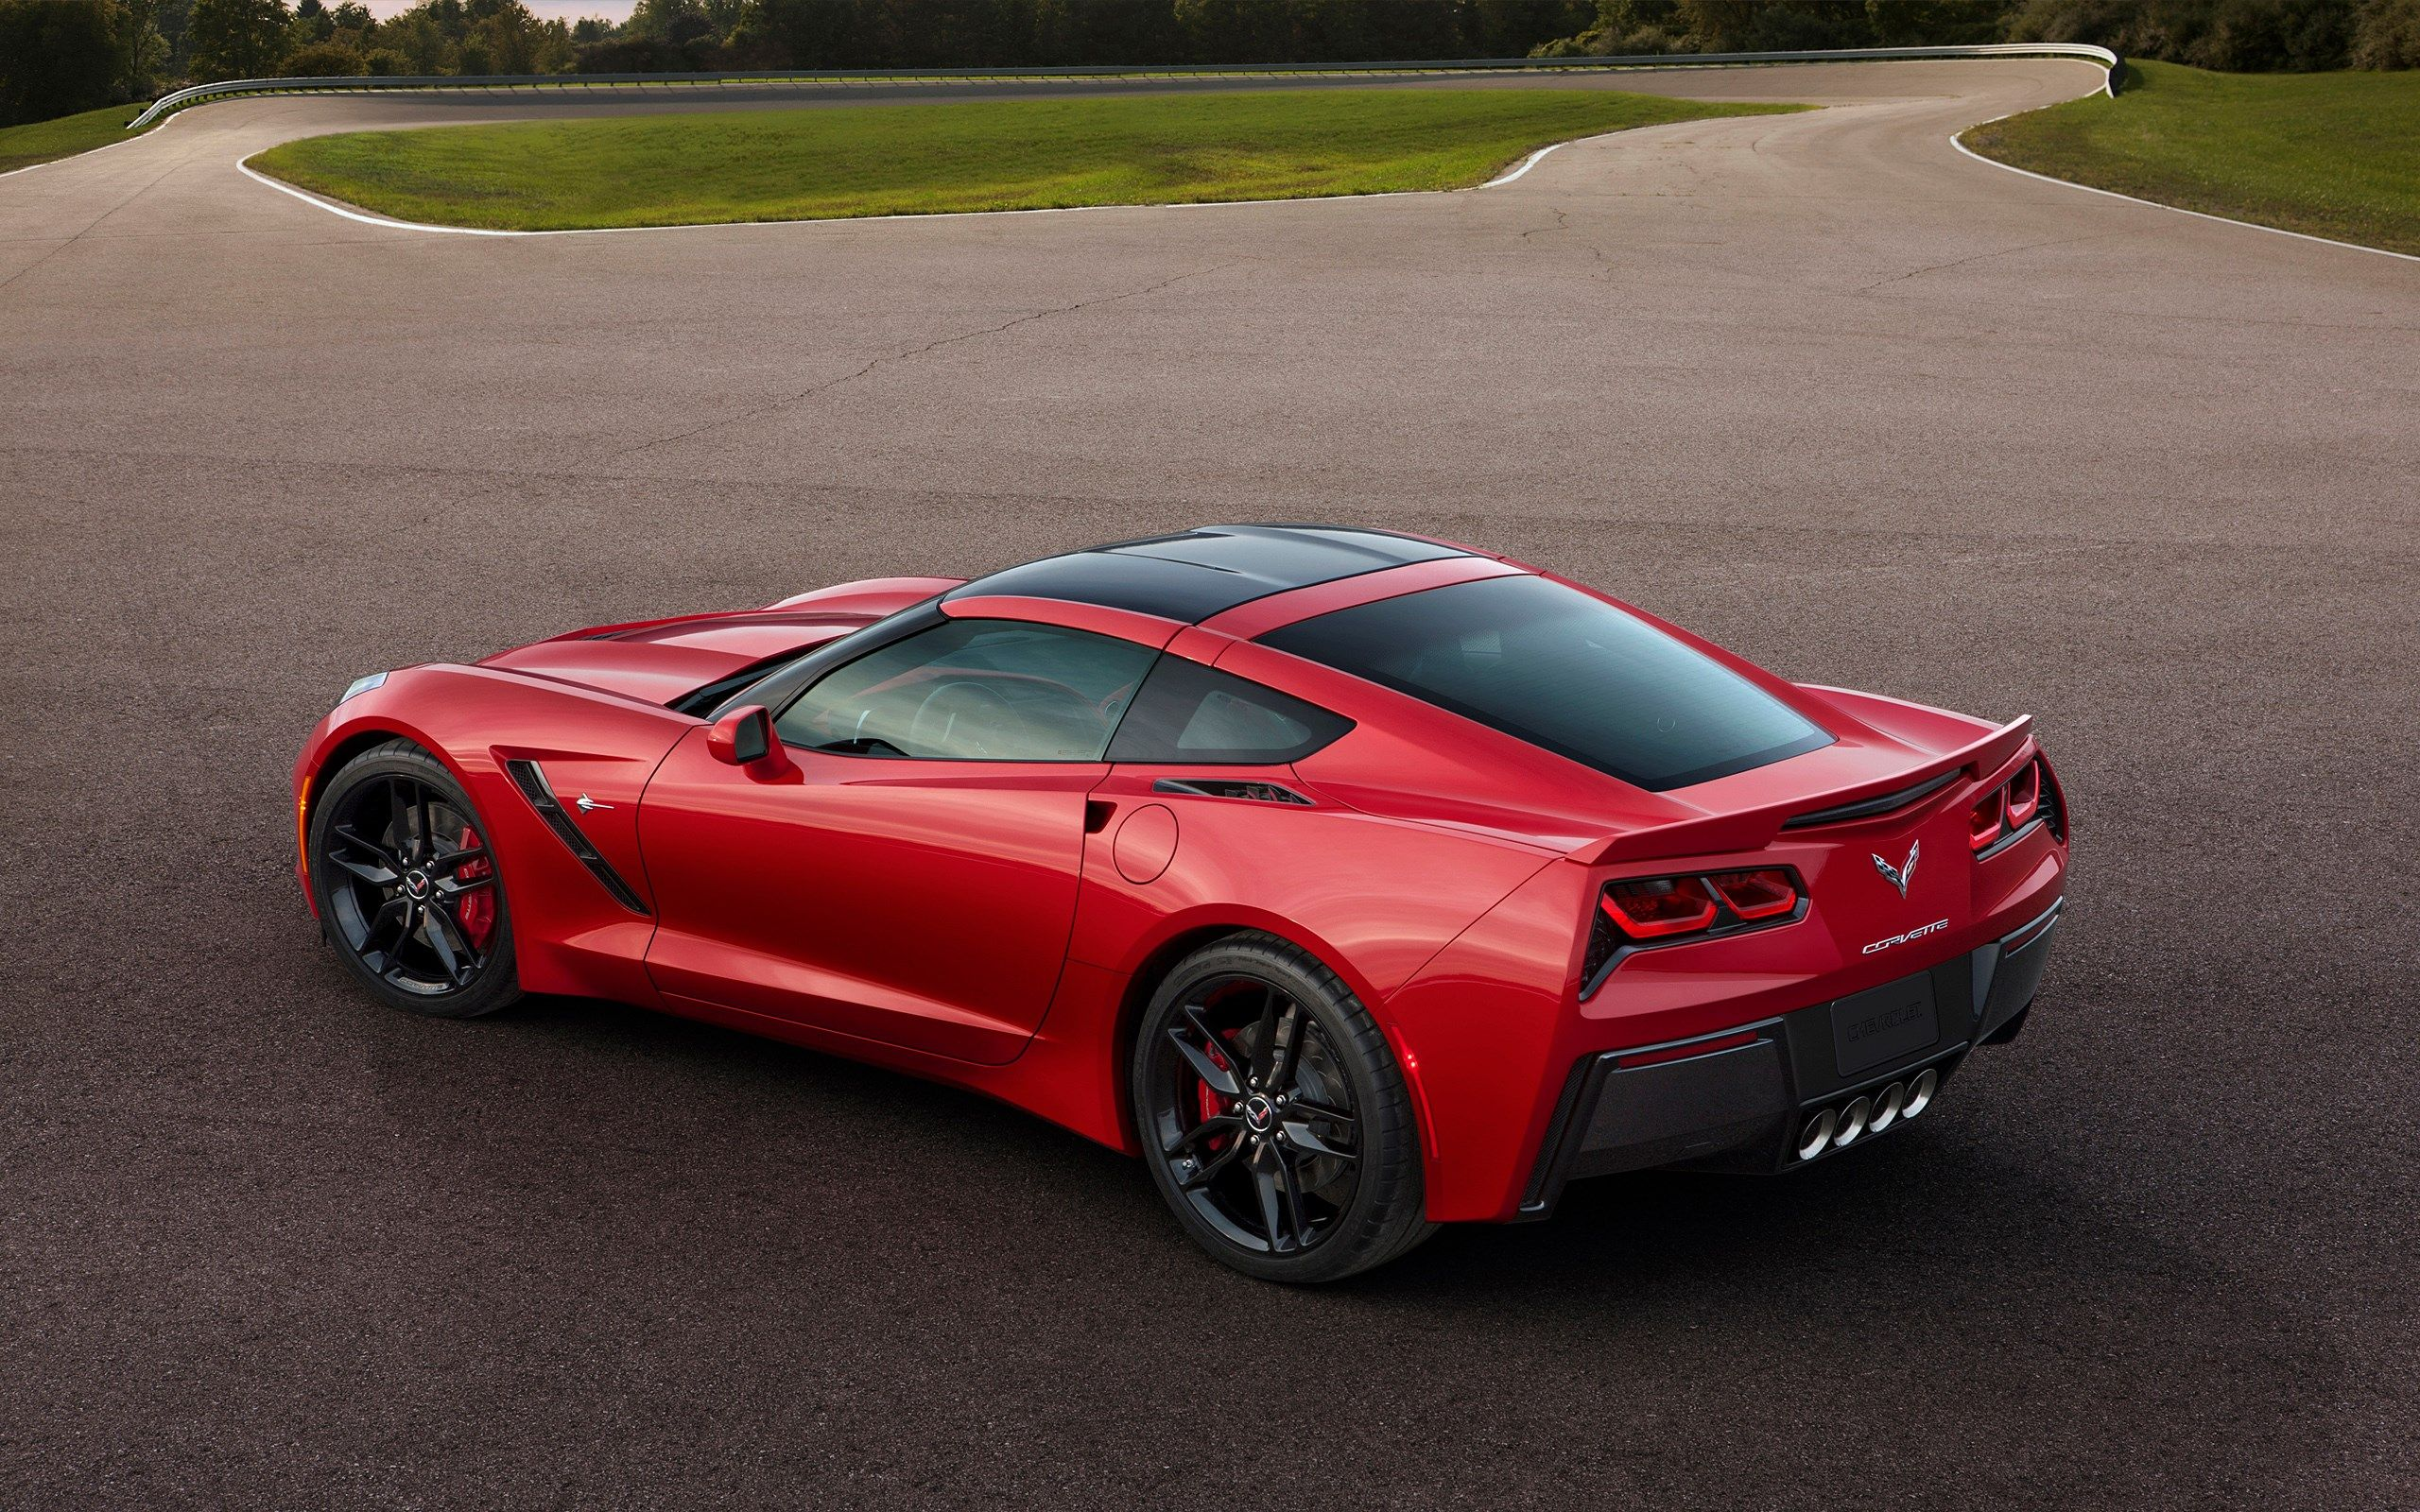 chevrolet corvette wallpaper hd backgrounds images chevrolet